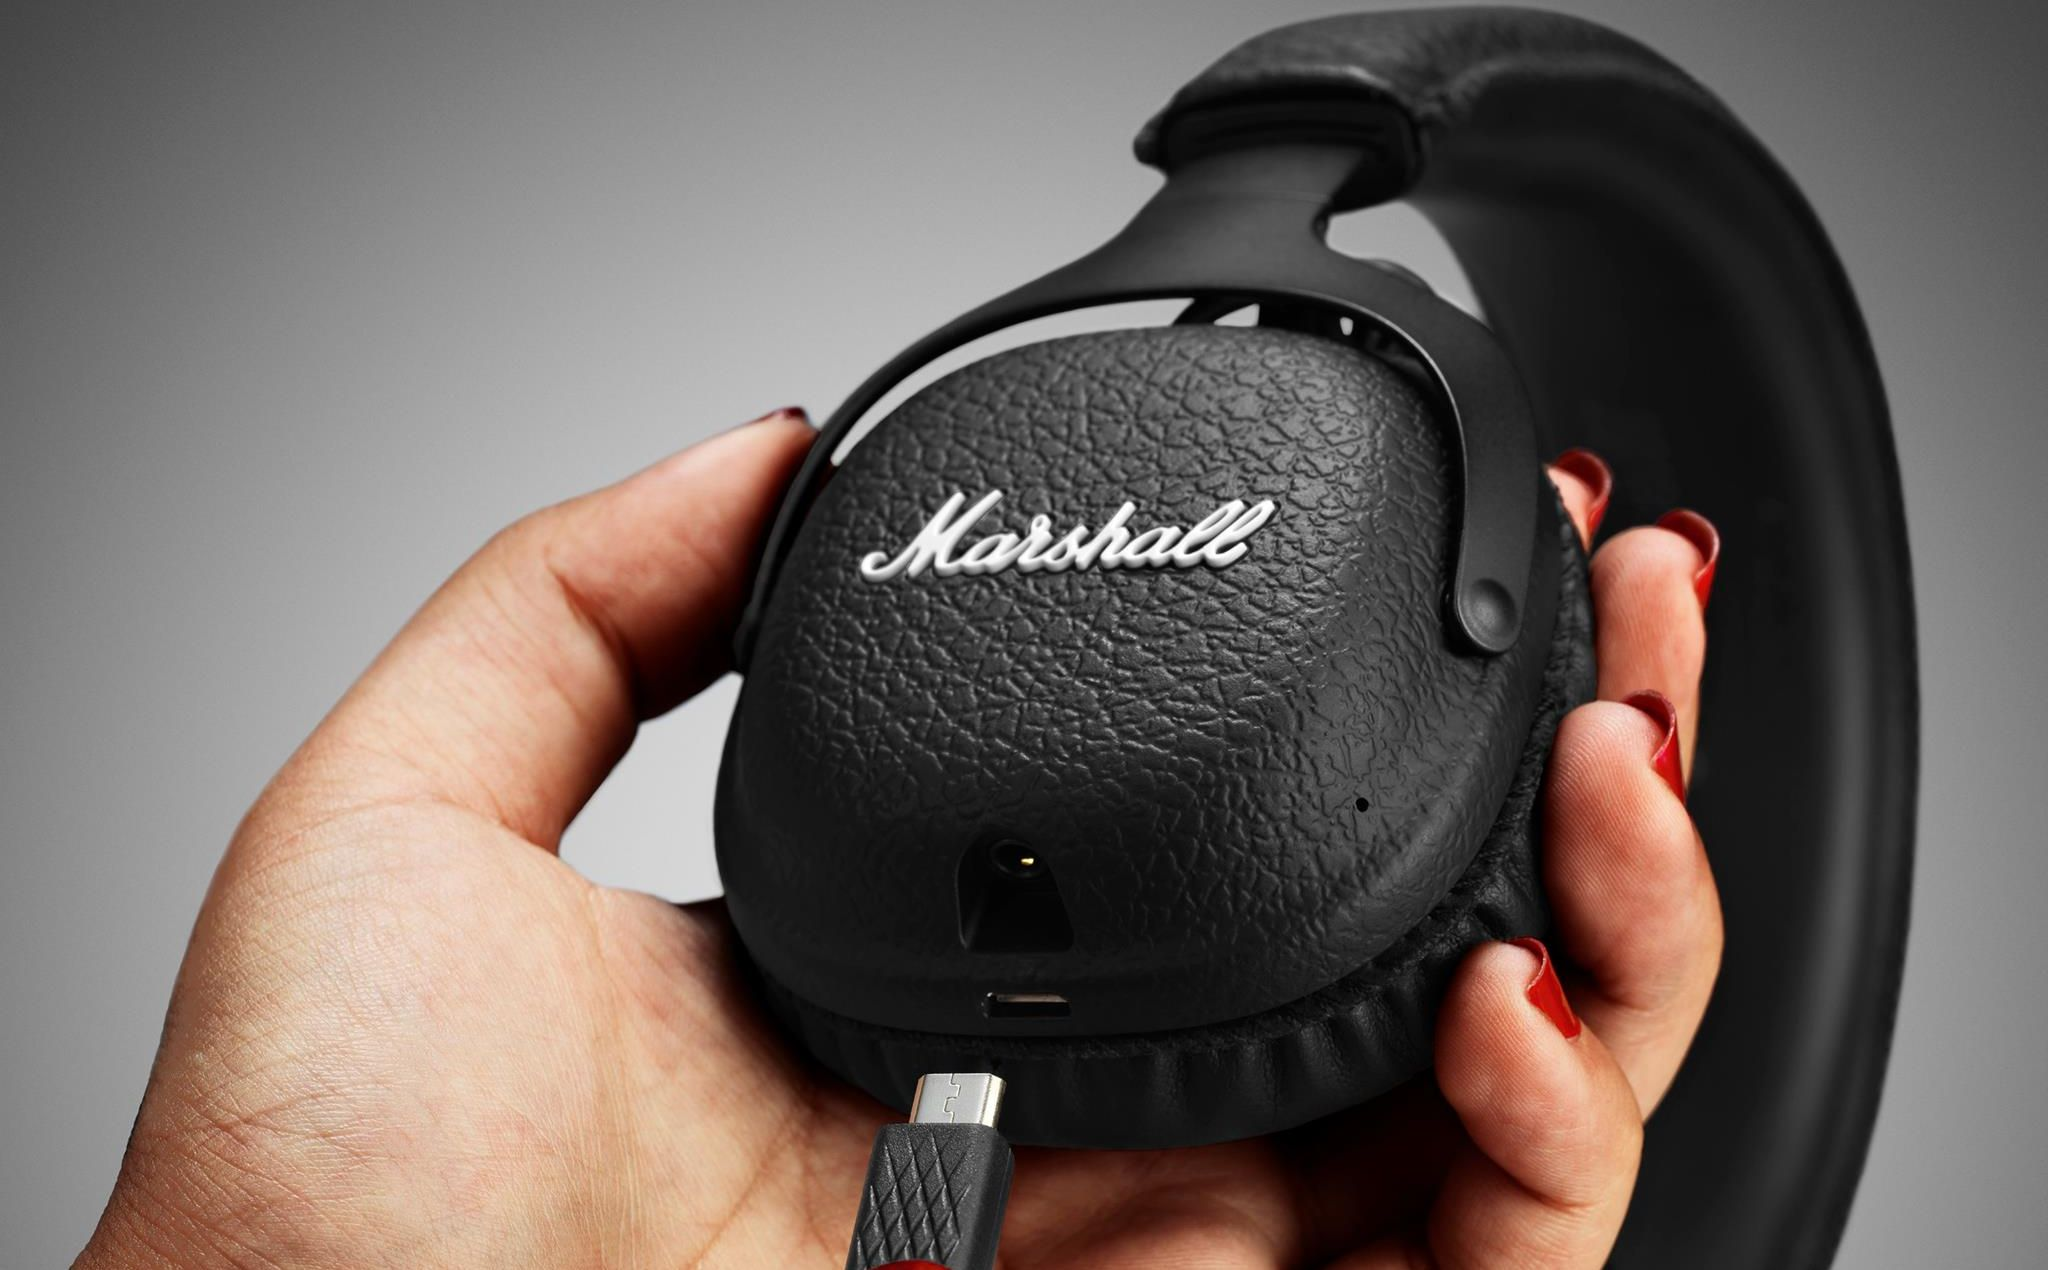 marshall headphones Review: Pom Pro Music Company Excels With New Bluetooth Headphones